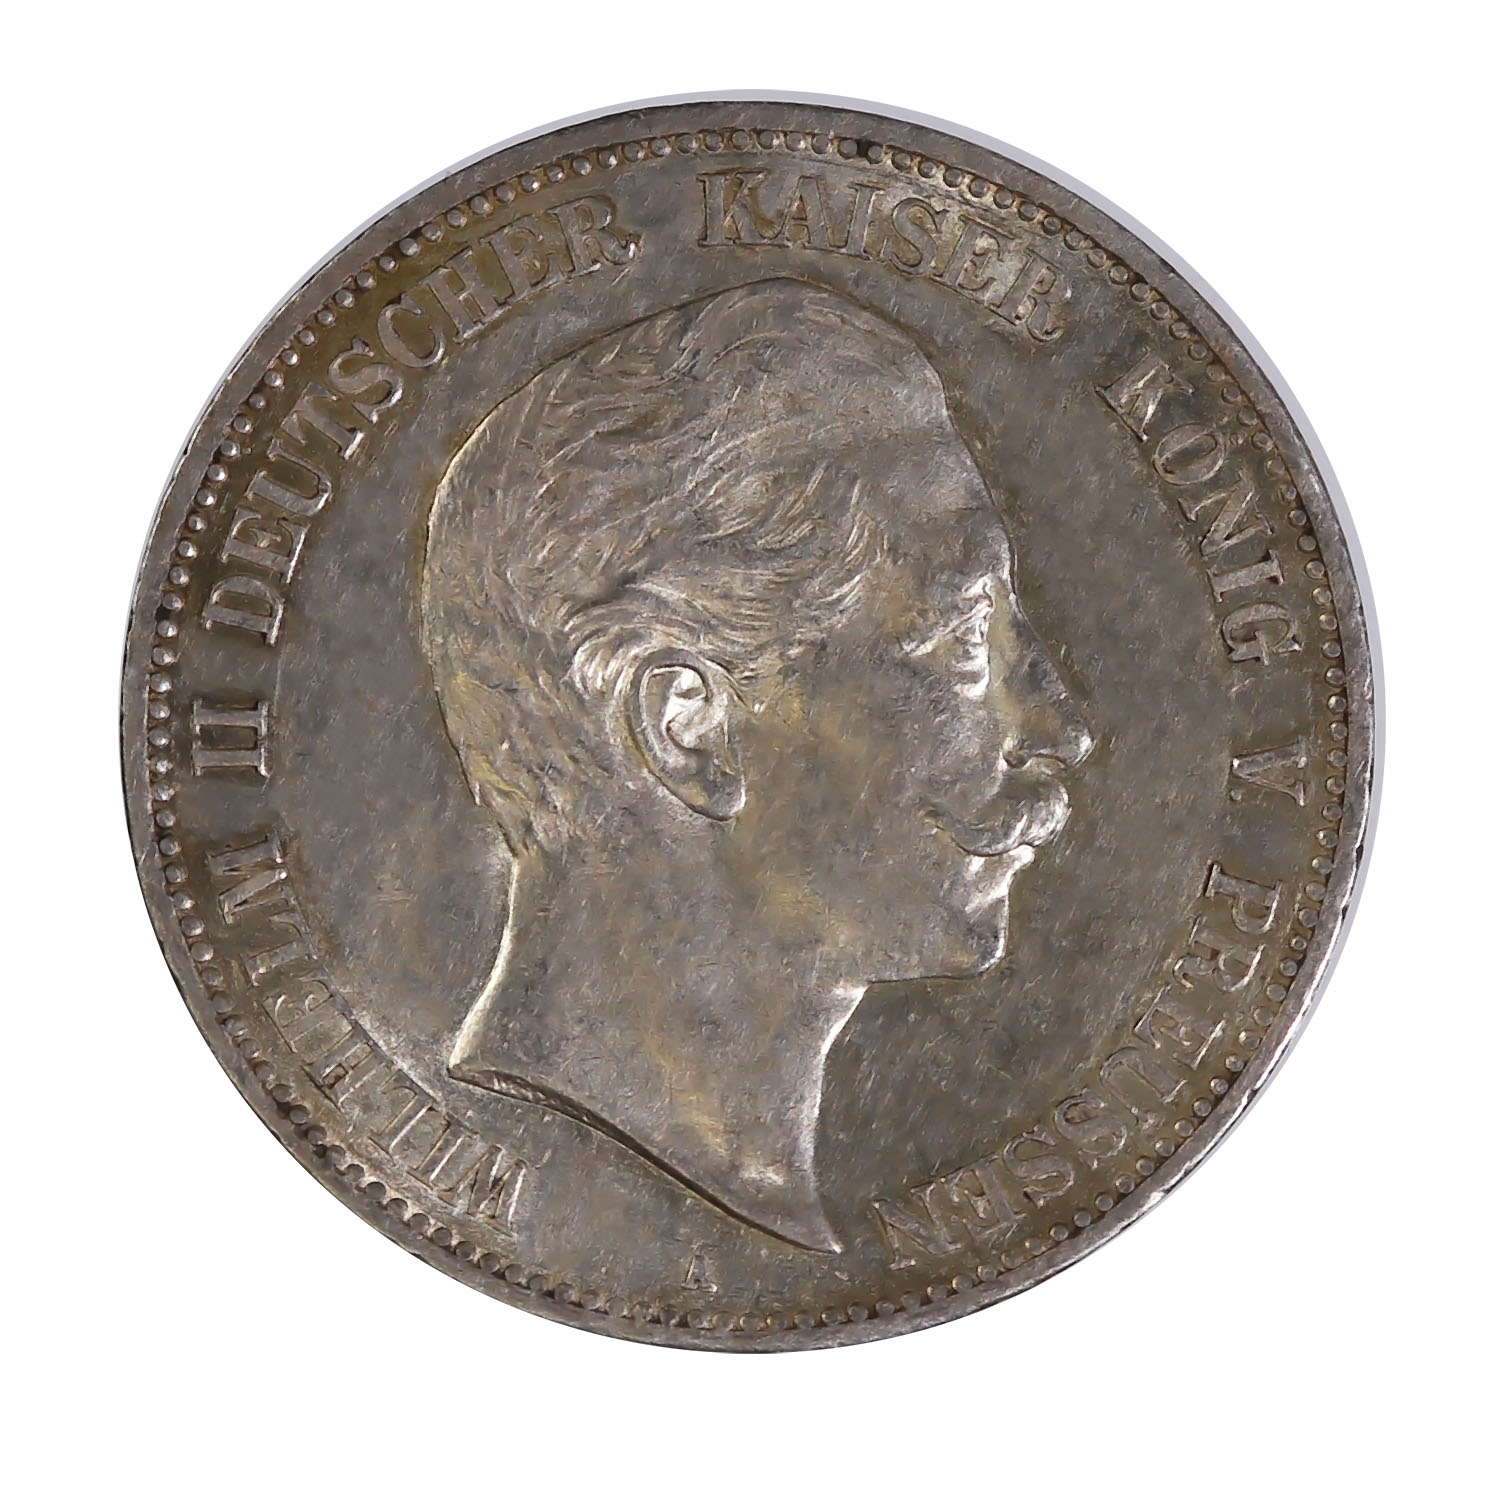 Prussia 5 mark silver 1891-1908 VF